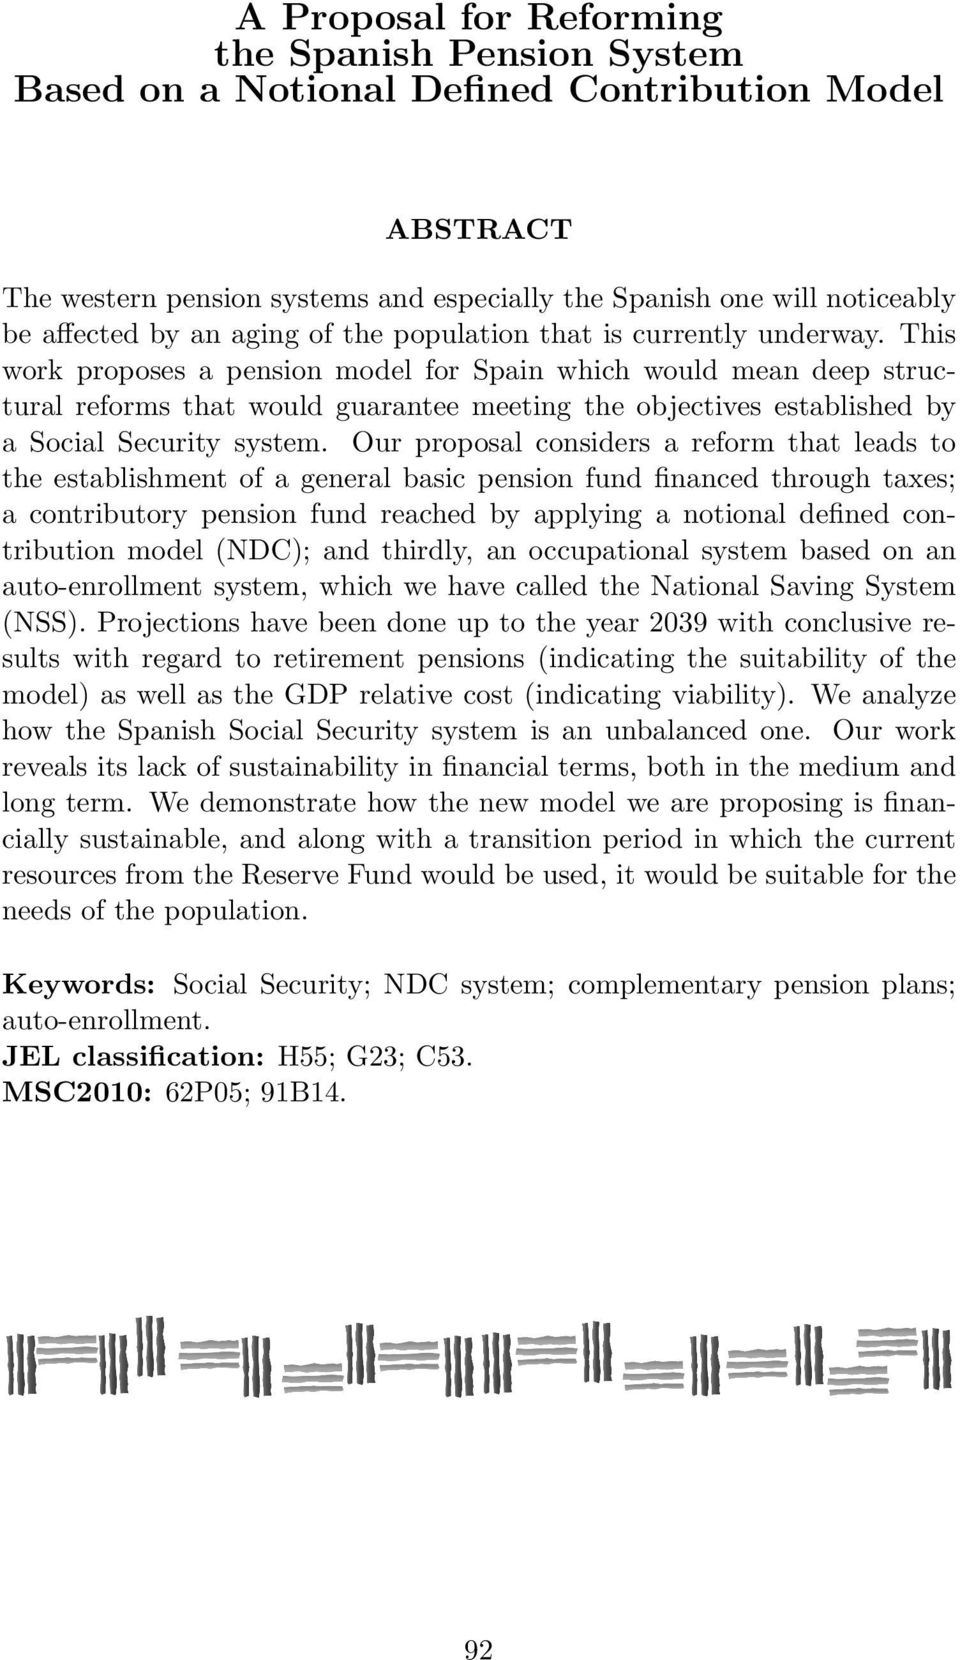 This work proposes a pension model for Spain which would mean deep structural reforms that would guarantee meeting the objectives established by a Social Security system.